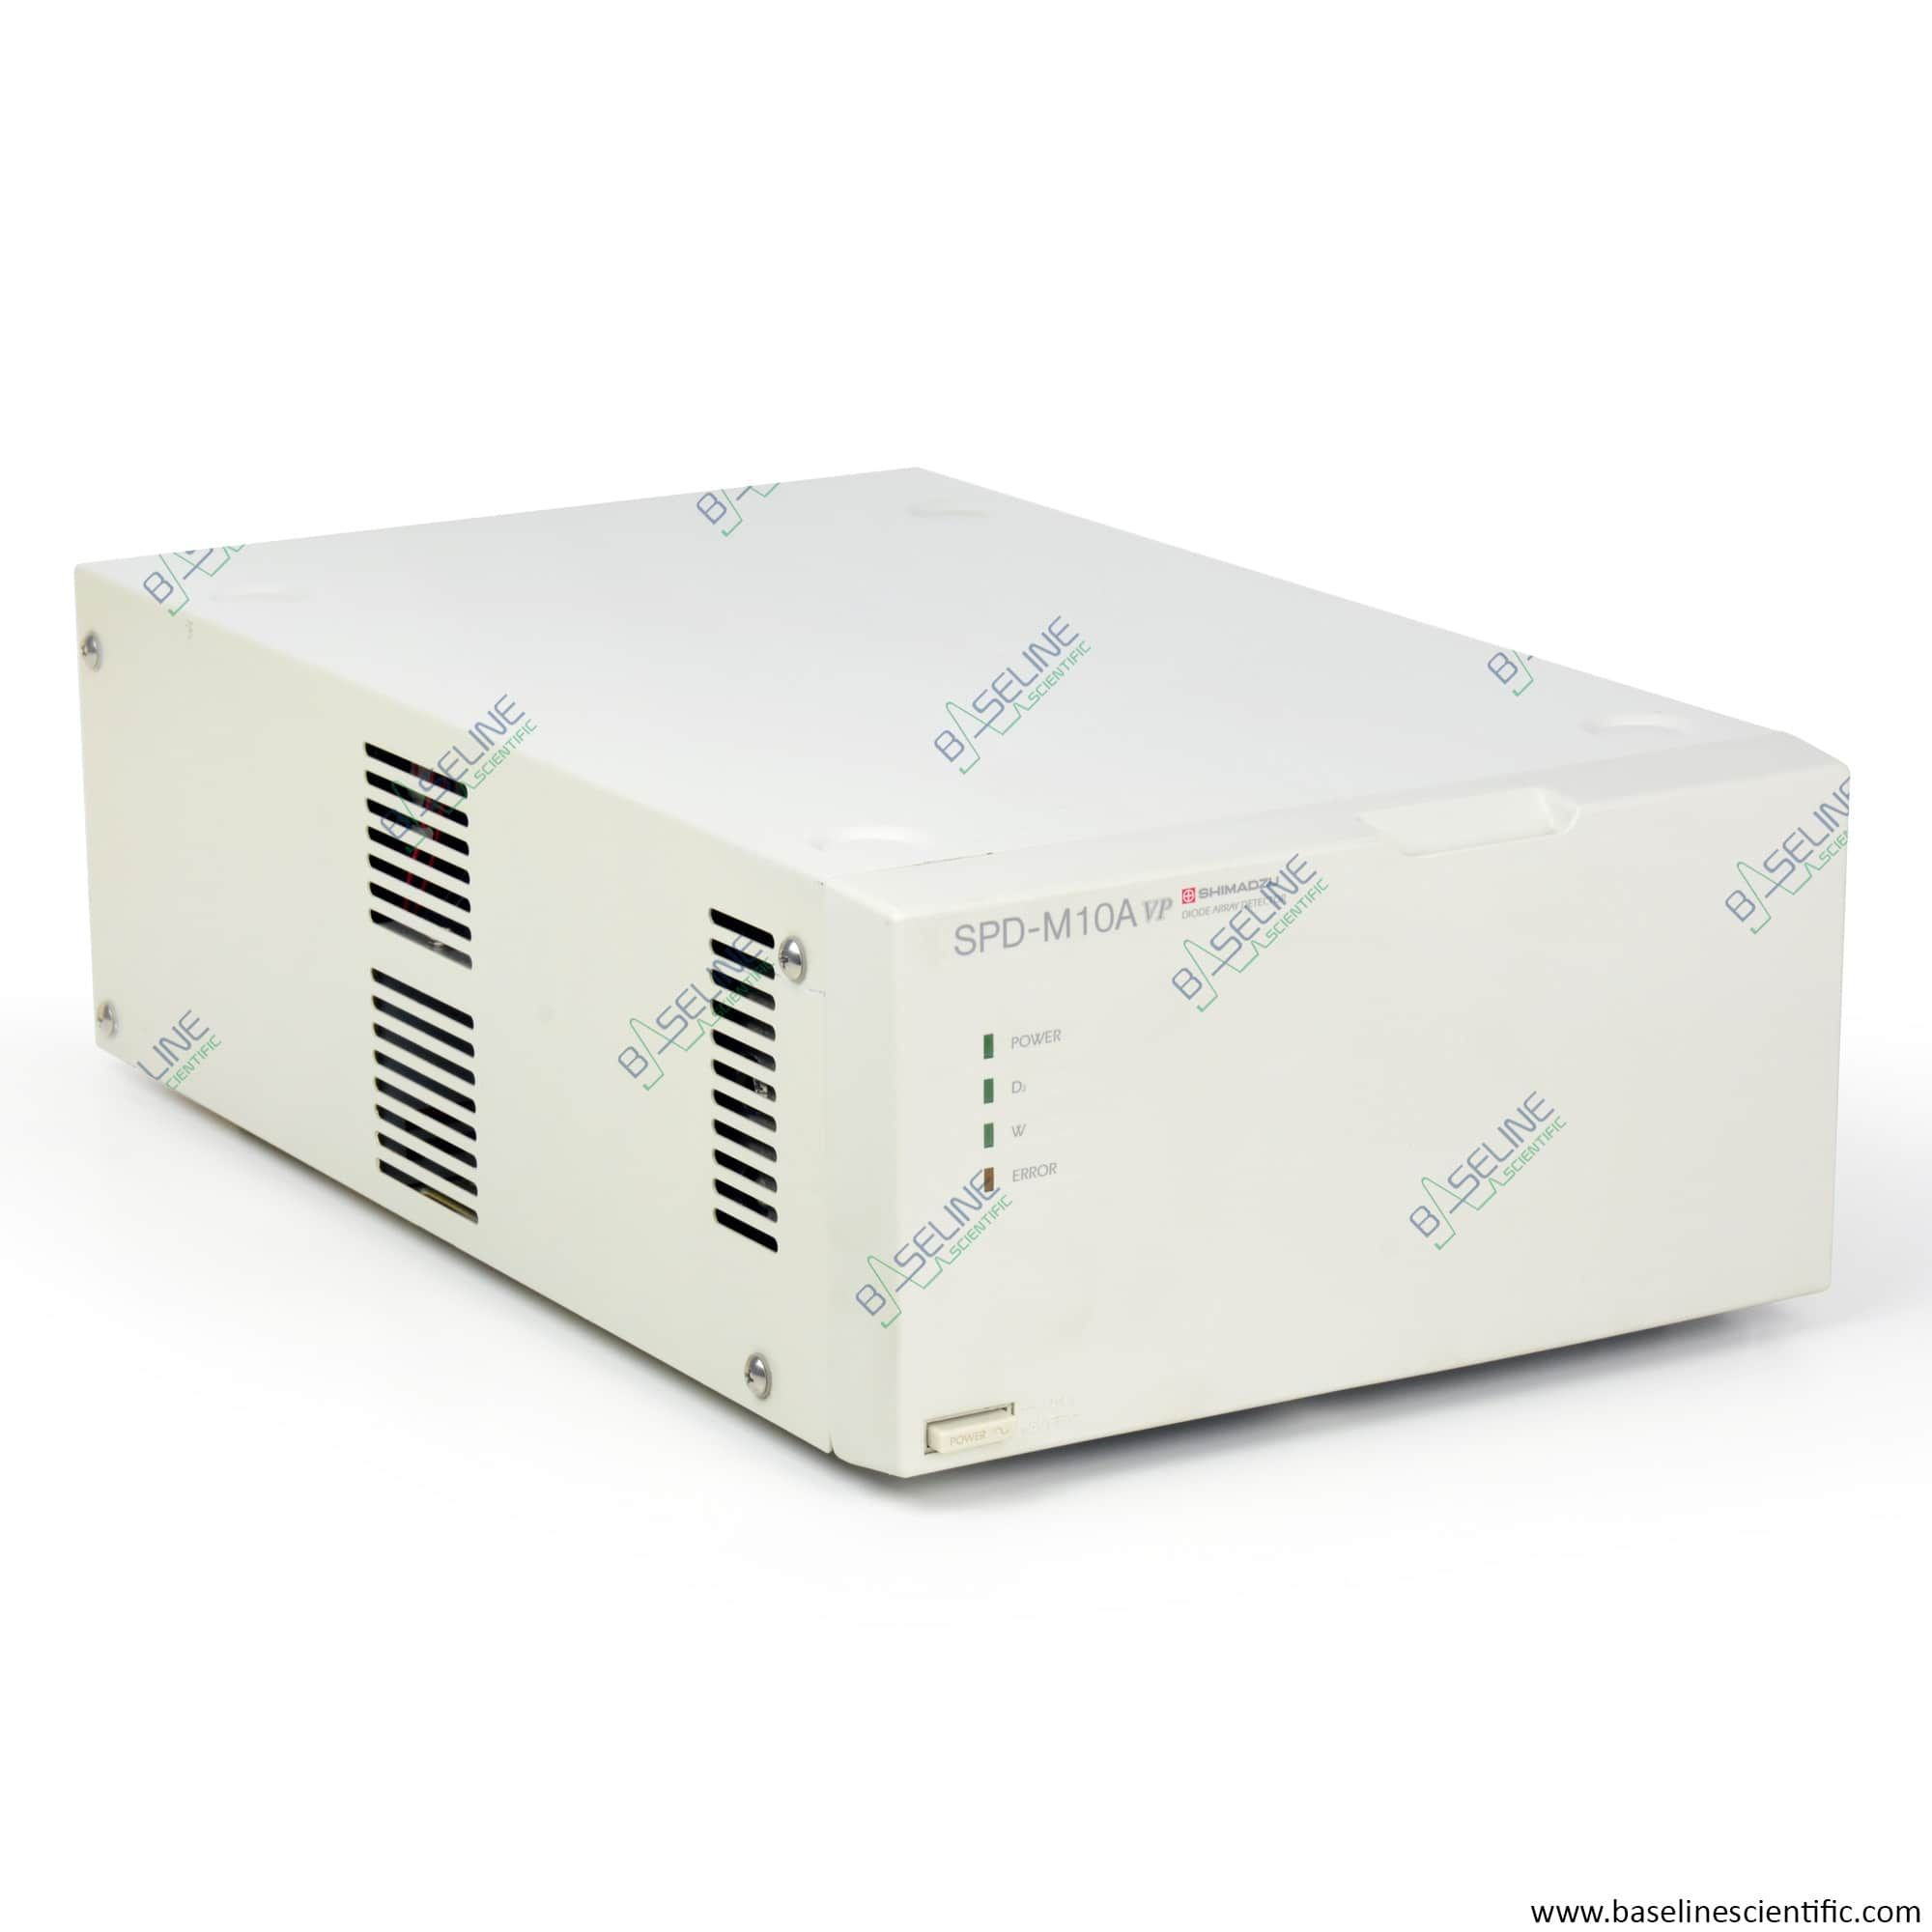 Refurbished Shimadzu SPD-M10A VP Photo Diode Array Detector with ONE YEAR WARRANTY